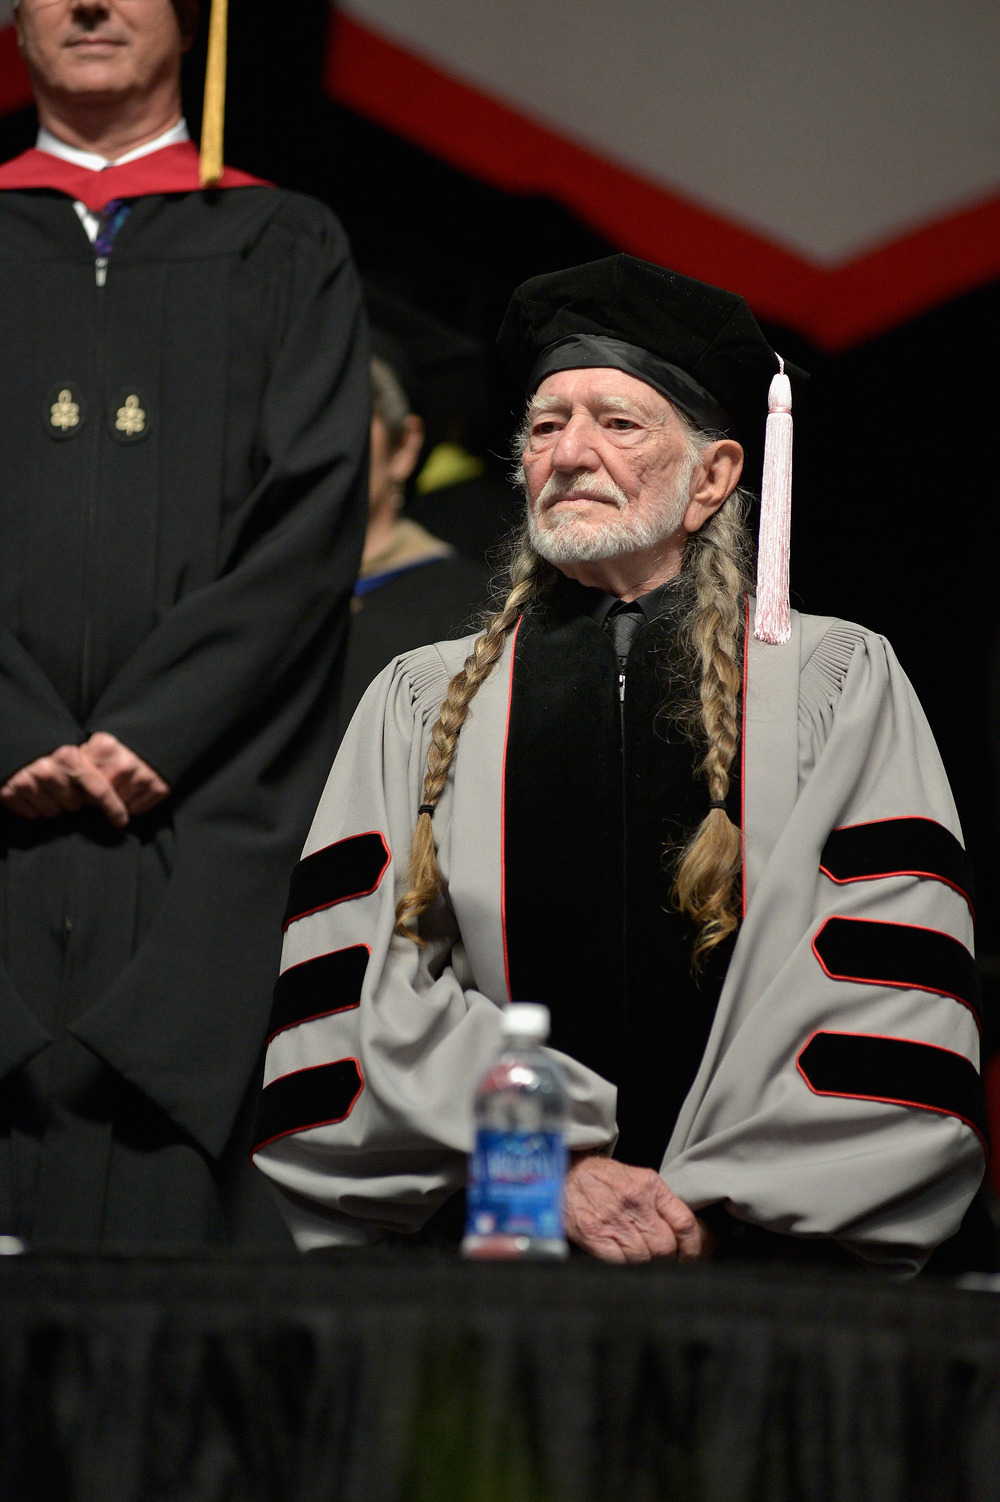 Willie Nelson at Berklee